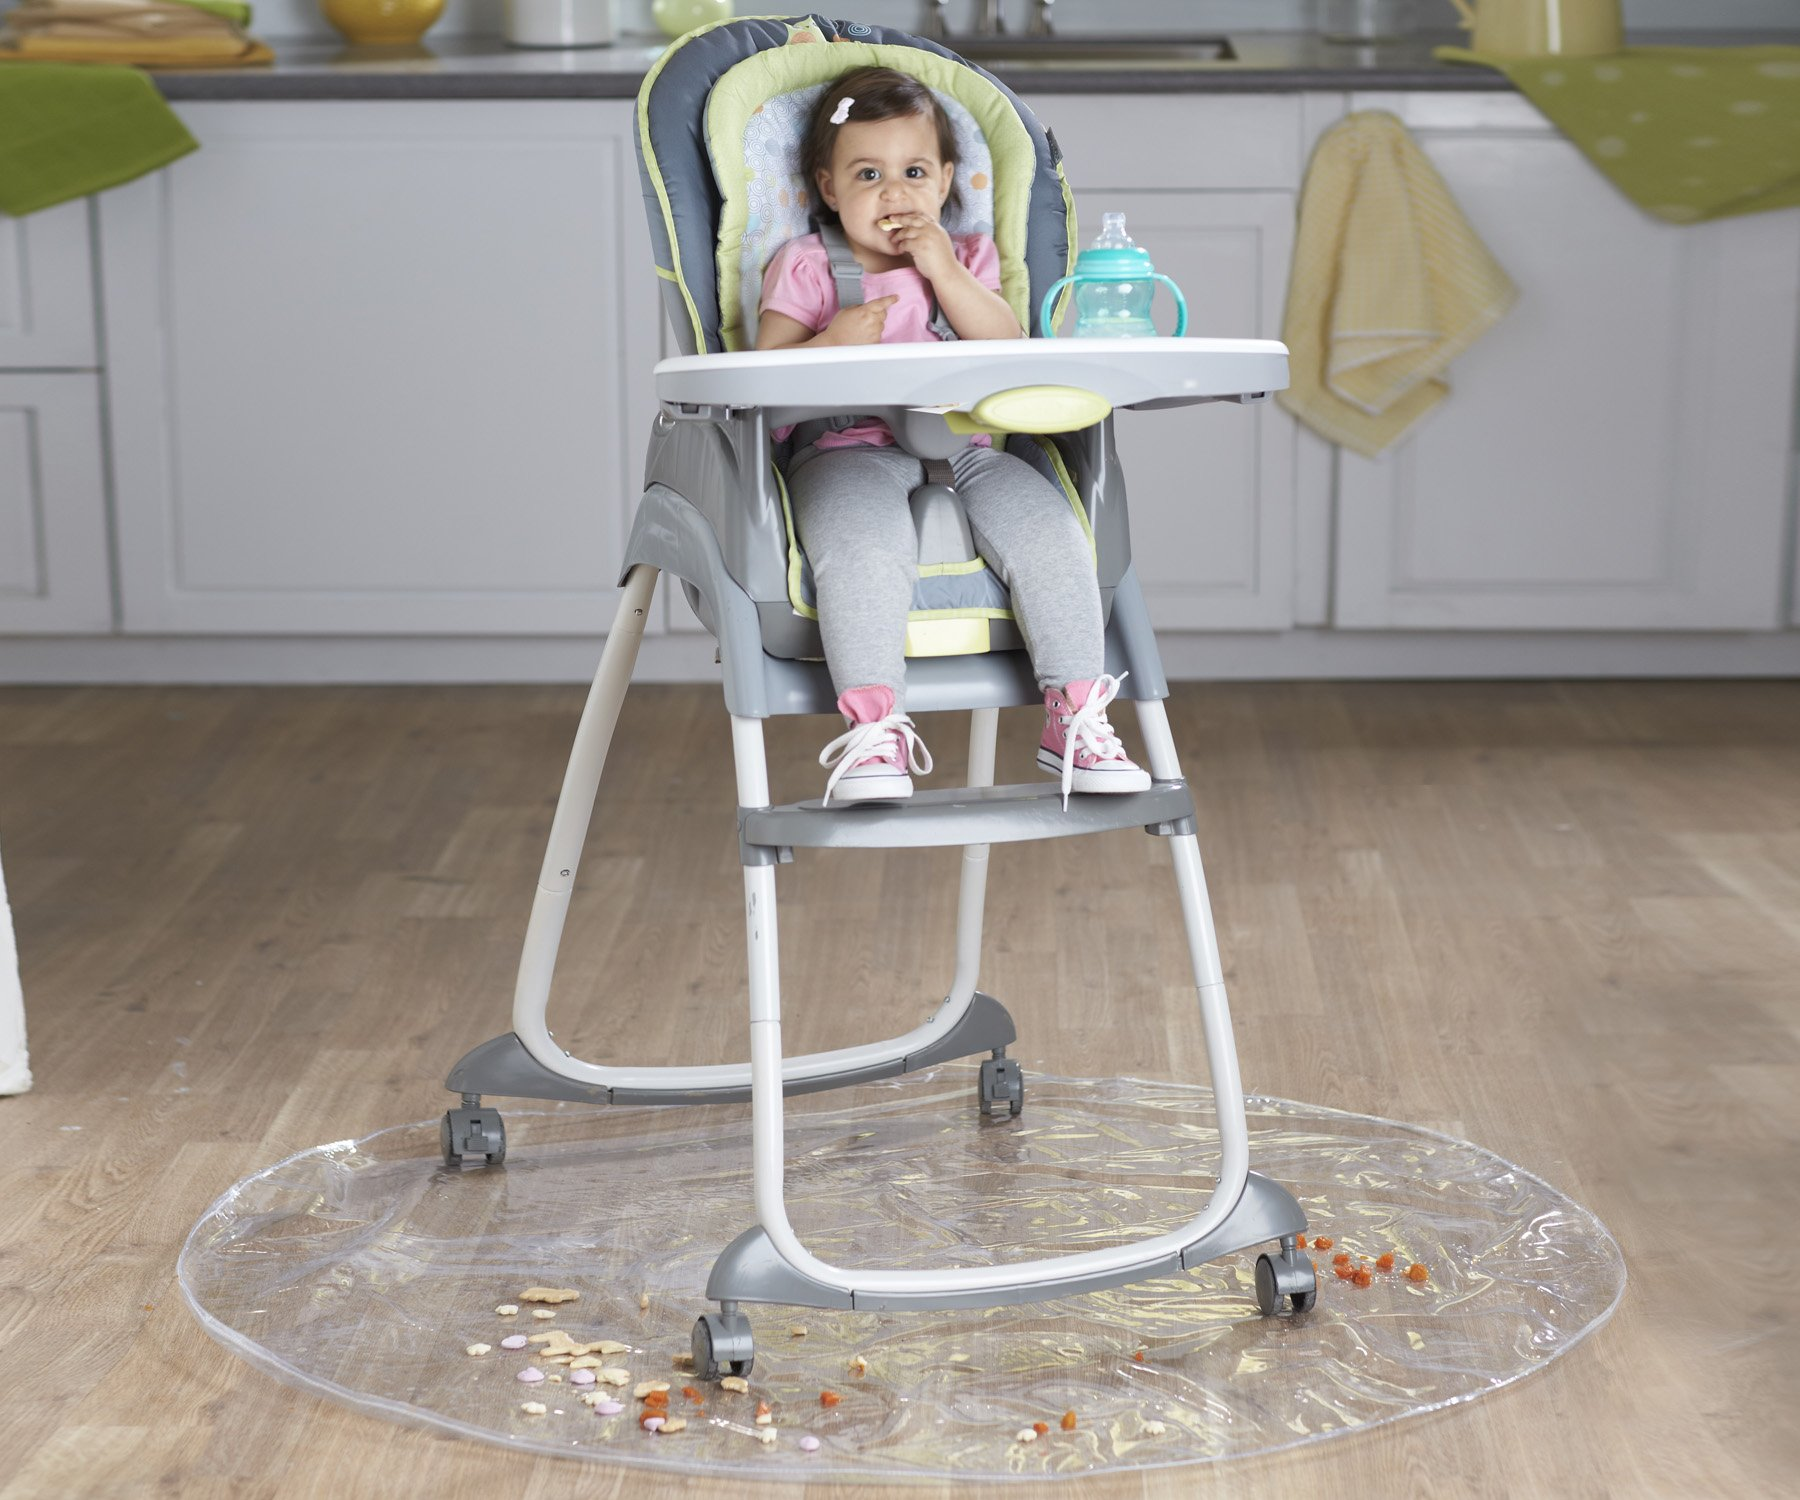 amazon com ingenuity smartclean trio 3 in 1 high chair slate baby